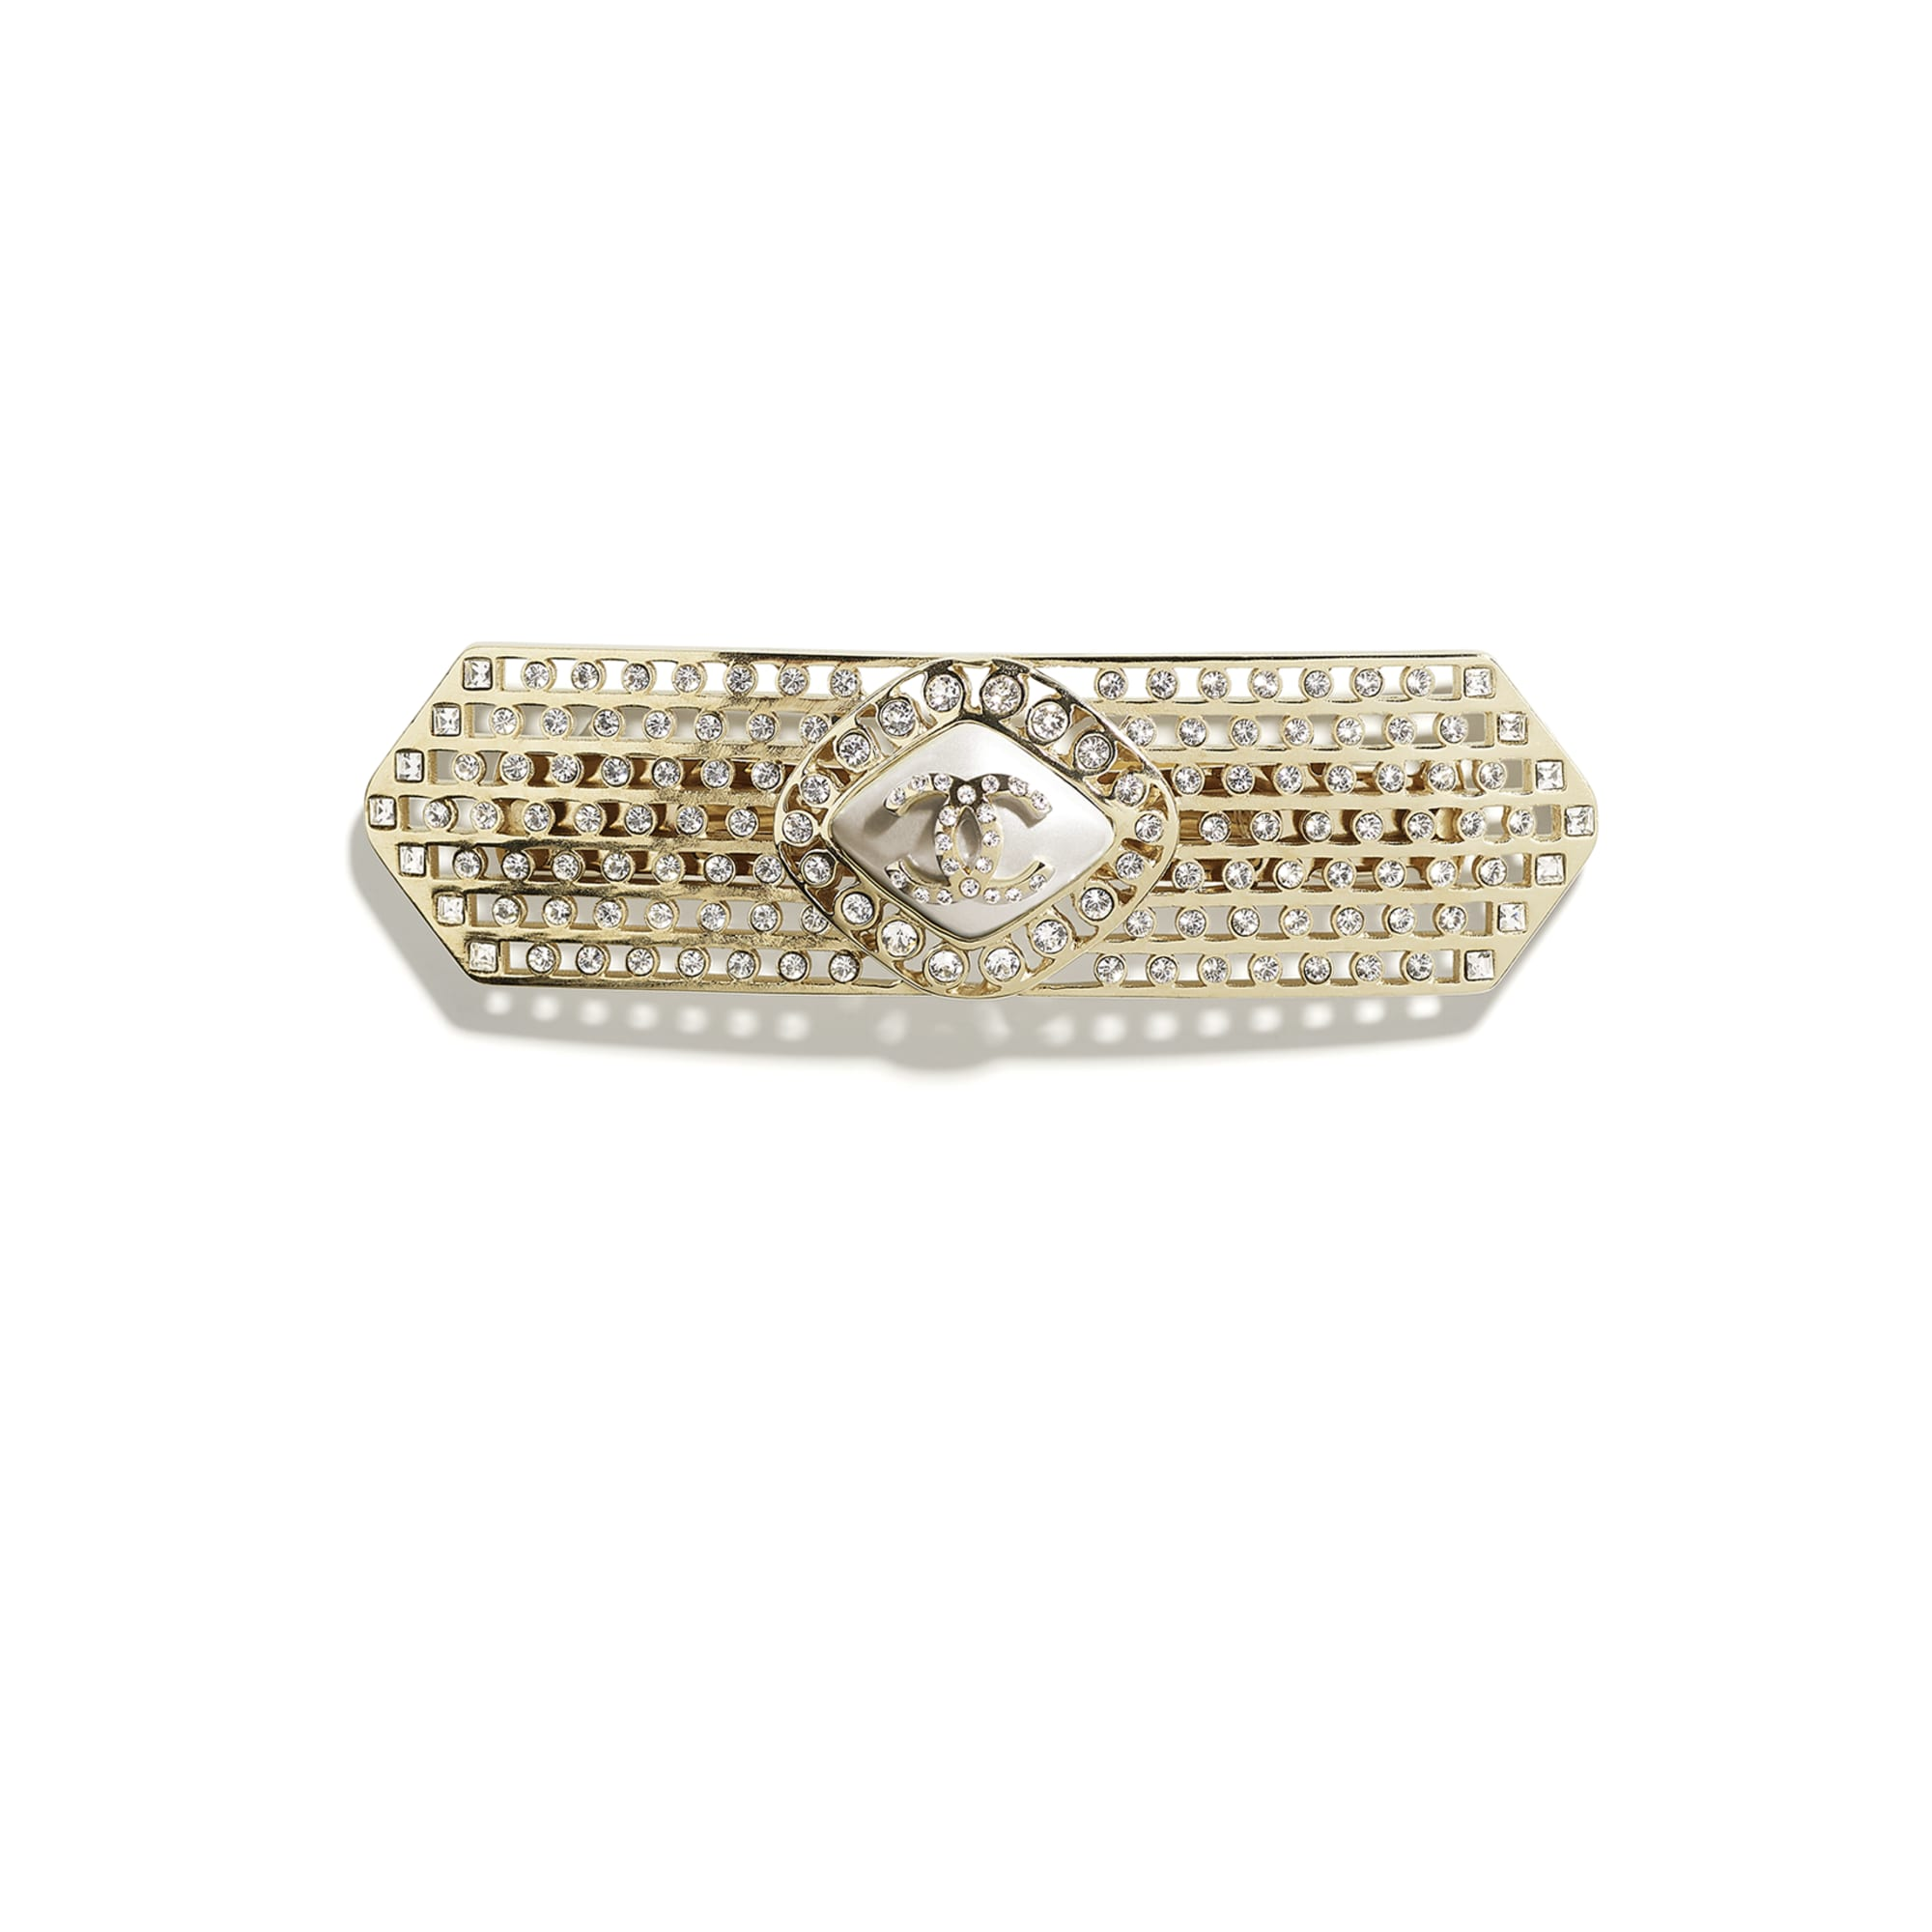 Hair Clip - Gold, Pearly White & Crystal - Metal, Diamantés & Resin - CHANEL - Default view - see standard sized version